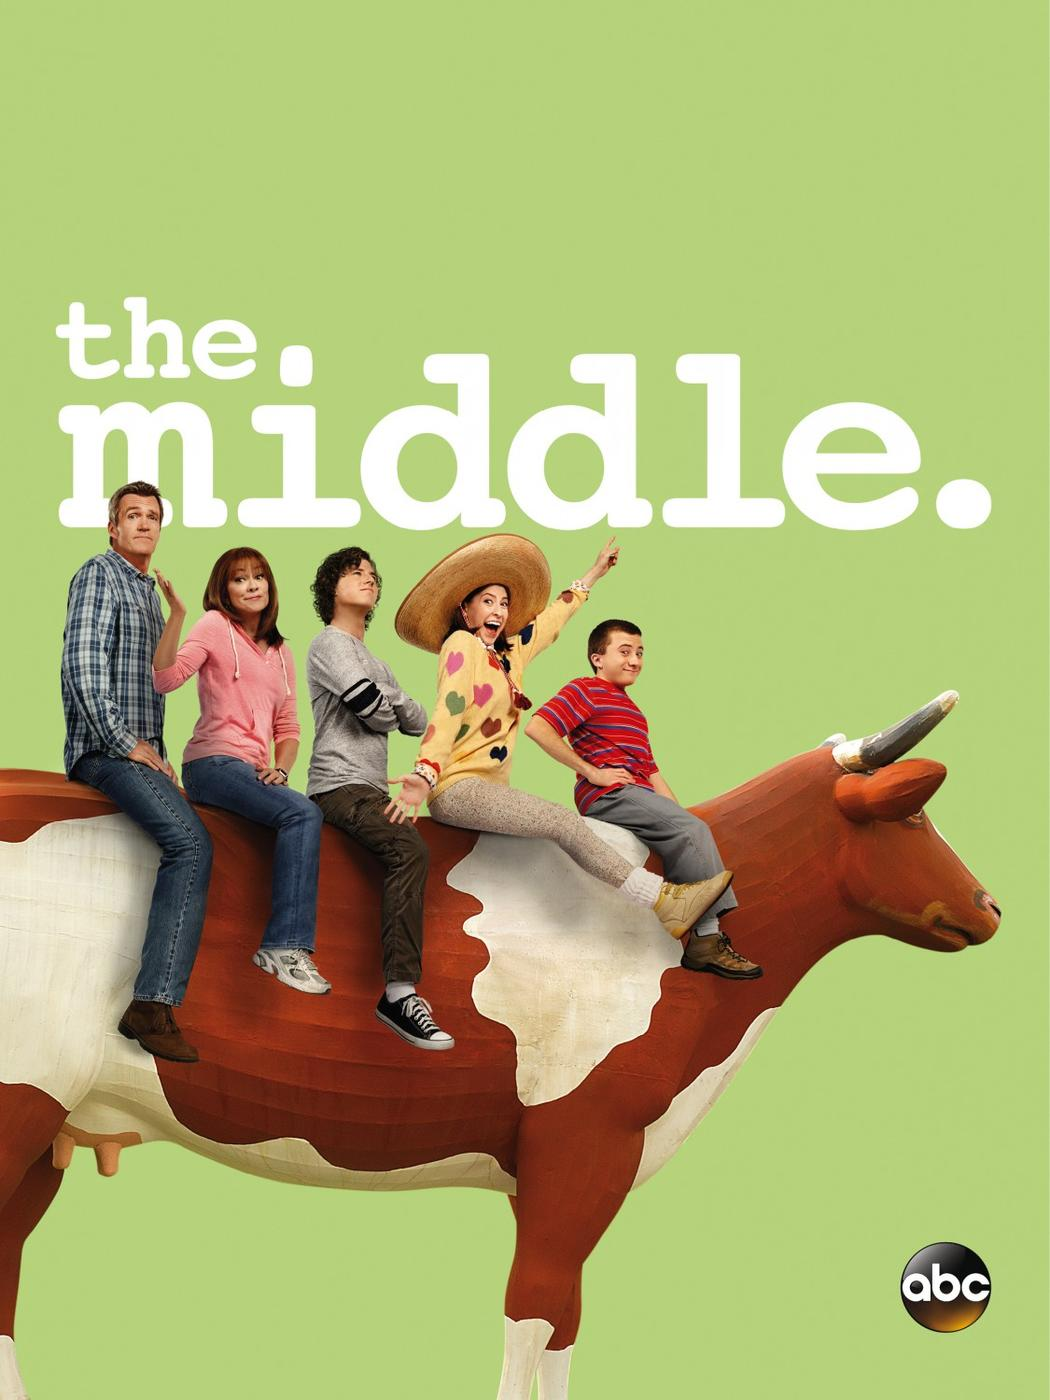 the-middle-poster-01.jpg